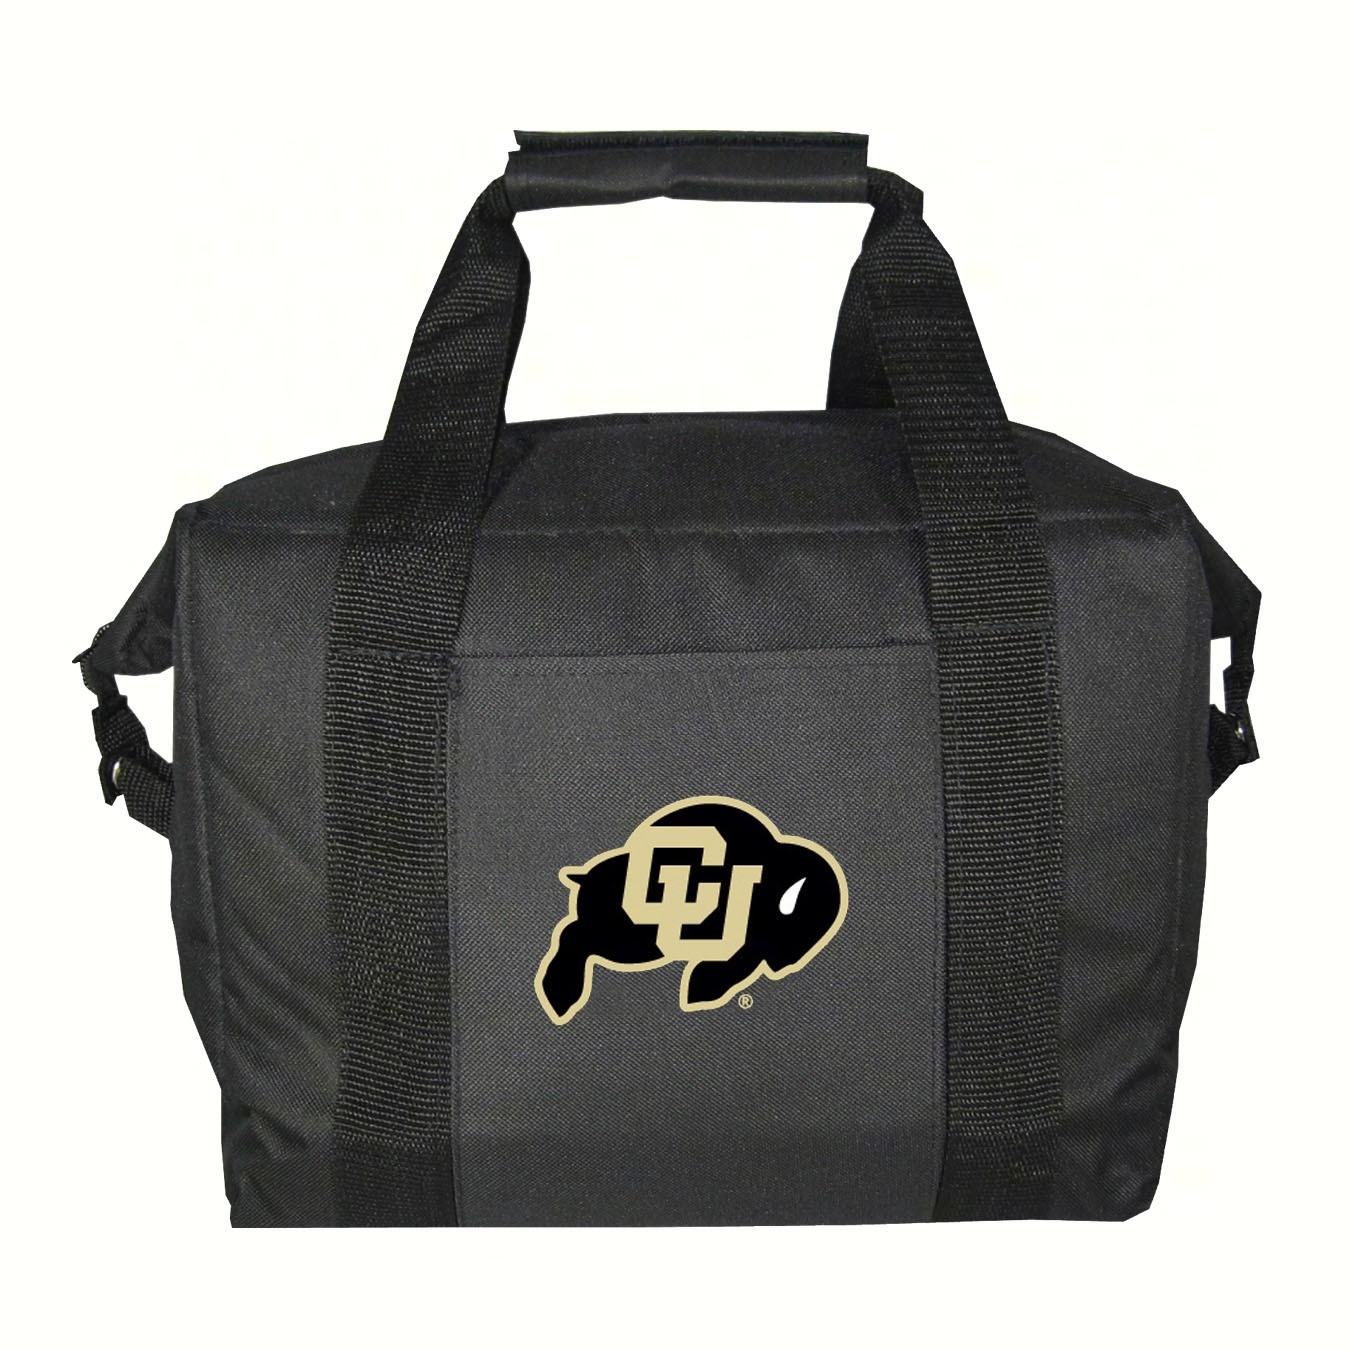 Kooler Bag - Colorado Buffaloes (Holds a 12 pack)